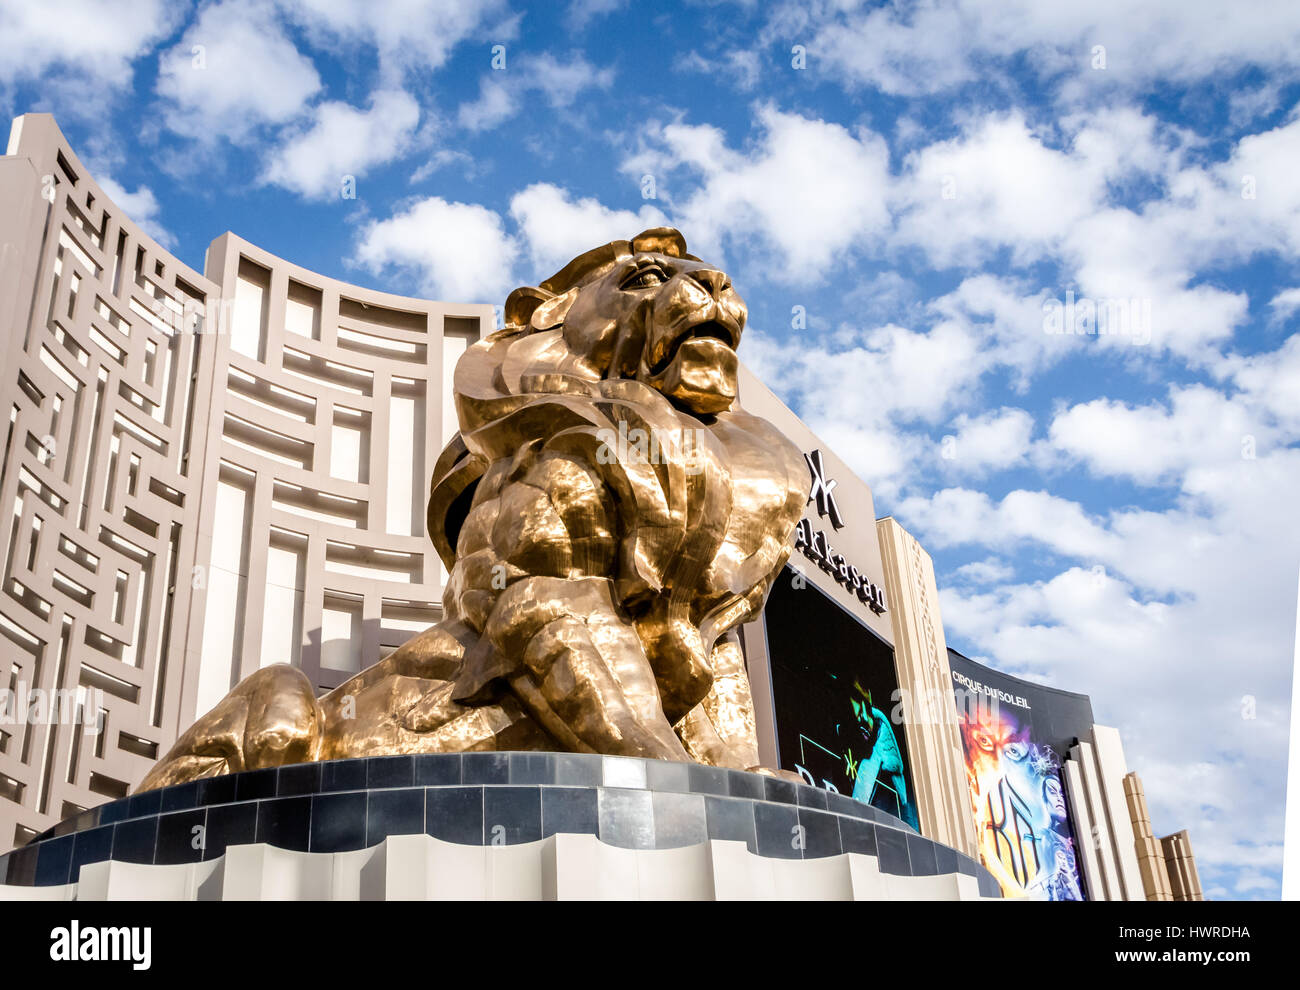 Golden Lion at MGM Grand Hotel and Casino - Las Vegas, Nevada, USA - Stock Image